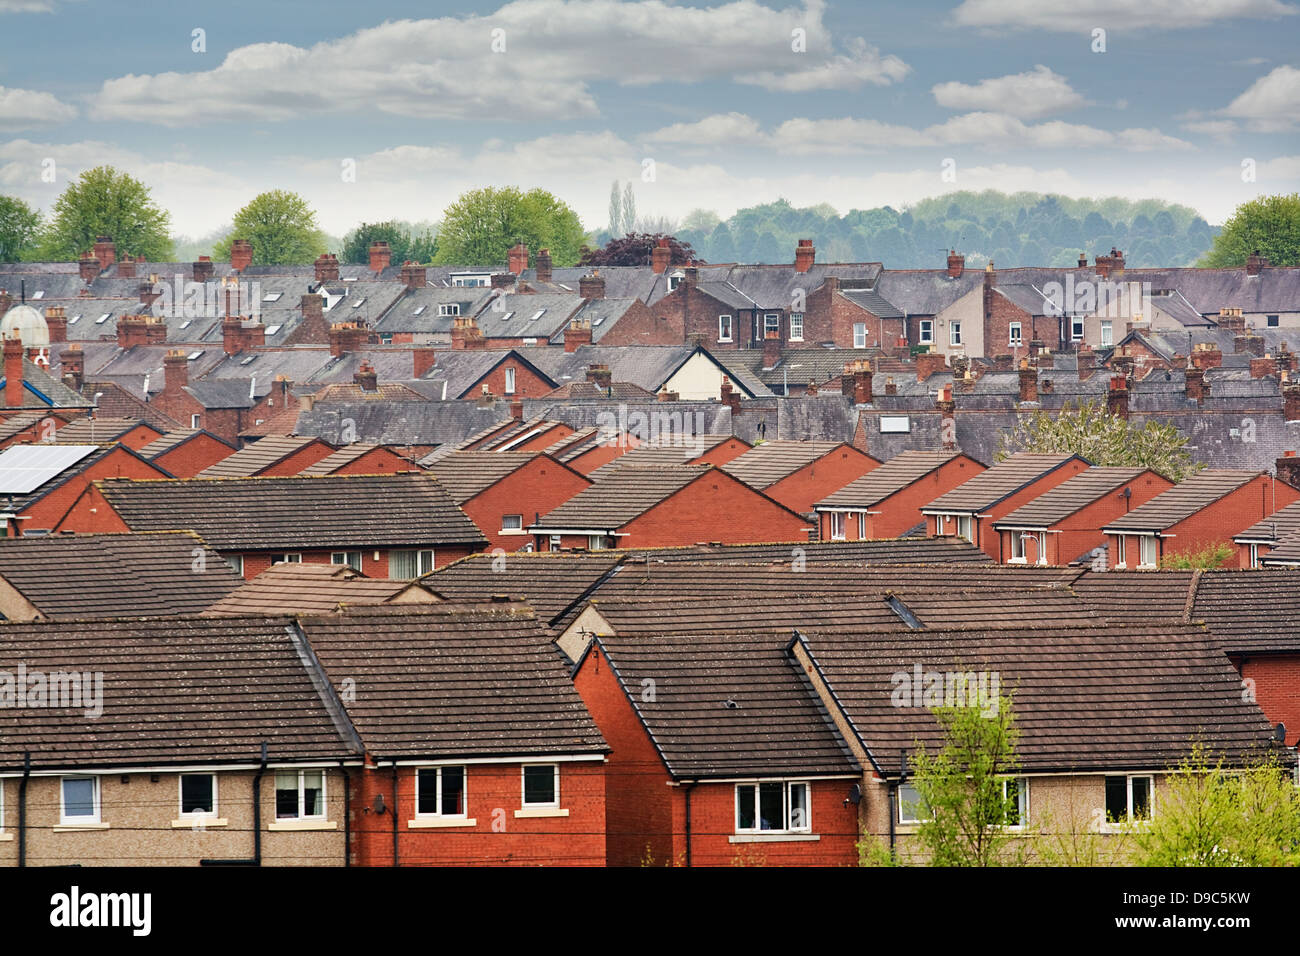 Urban scene across built up area showing the slate roof tops of terraced houses on an old housing estate - Stock Image